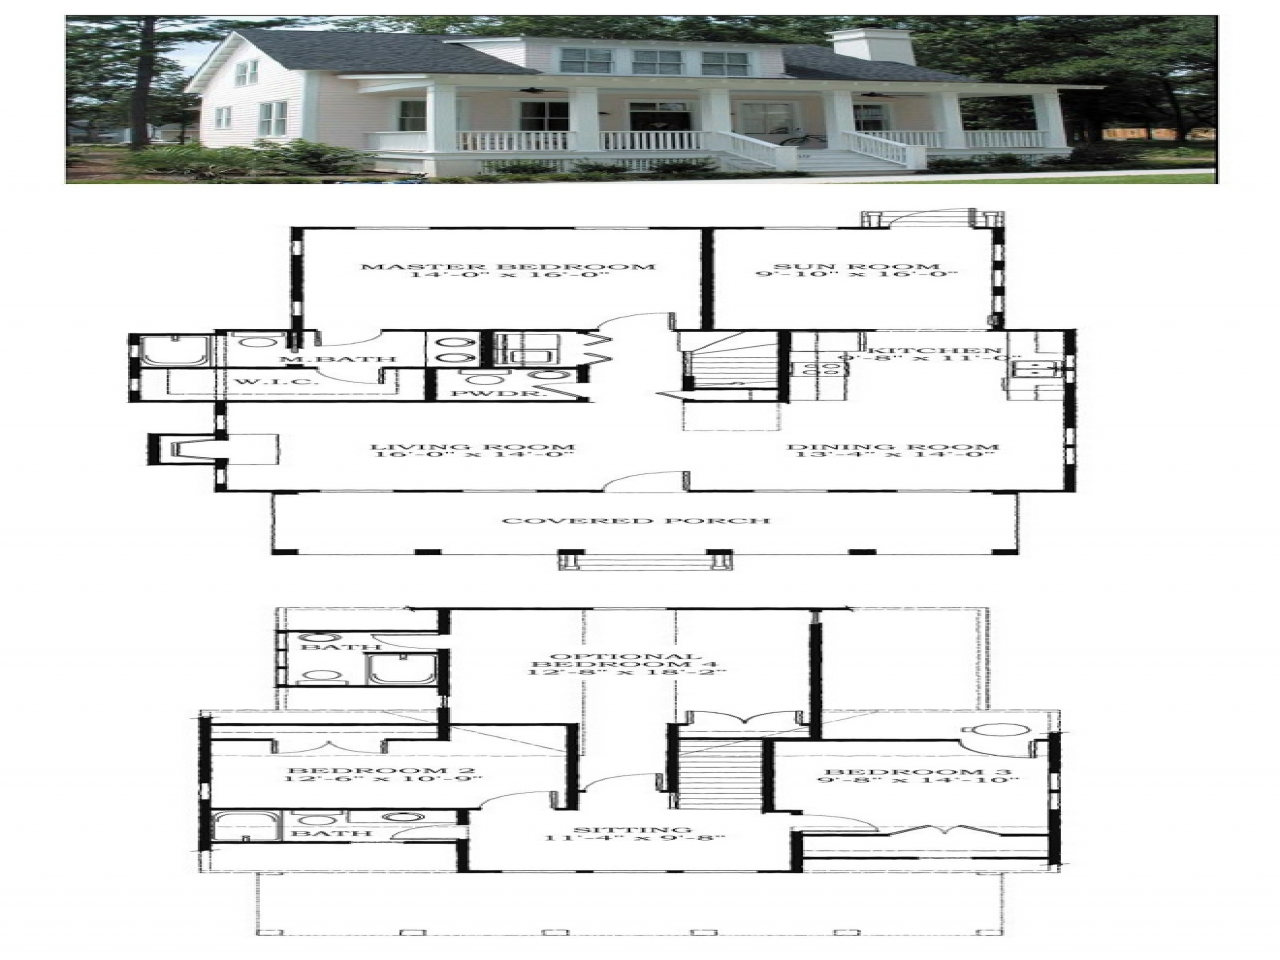 quaint bungalow house plans html with 91eb5fa52b8c9a8a Cottage Floor Plans Via Cool House Plans Cottage Floor Plans With Loft on Tudor Style Bungalow additionally 39bd9790dfc4e462 Inside Tiny Houses Living Tiny House Australia as well Aa457b22044b8dbb 2 Bedroom Cabin Floor Plans Small 2 Bedroom Cottage House Plans additionally The Best Exercises For Your besides Japanese Bungalow.